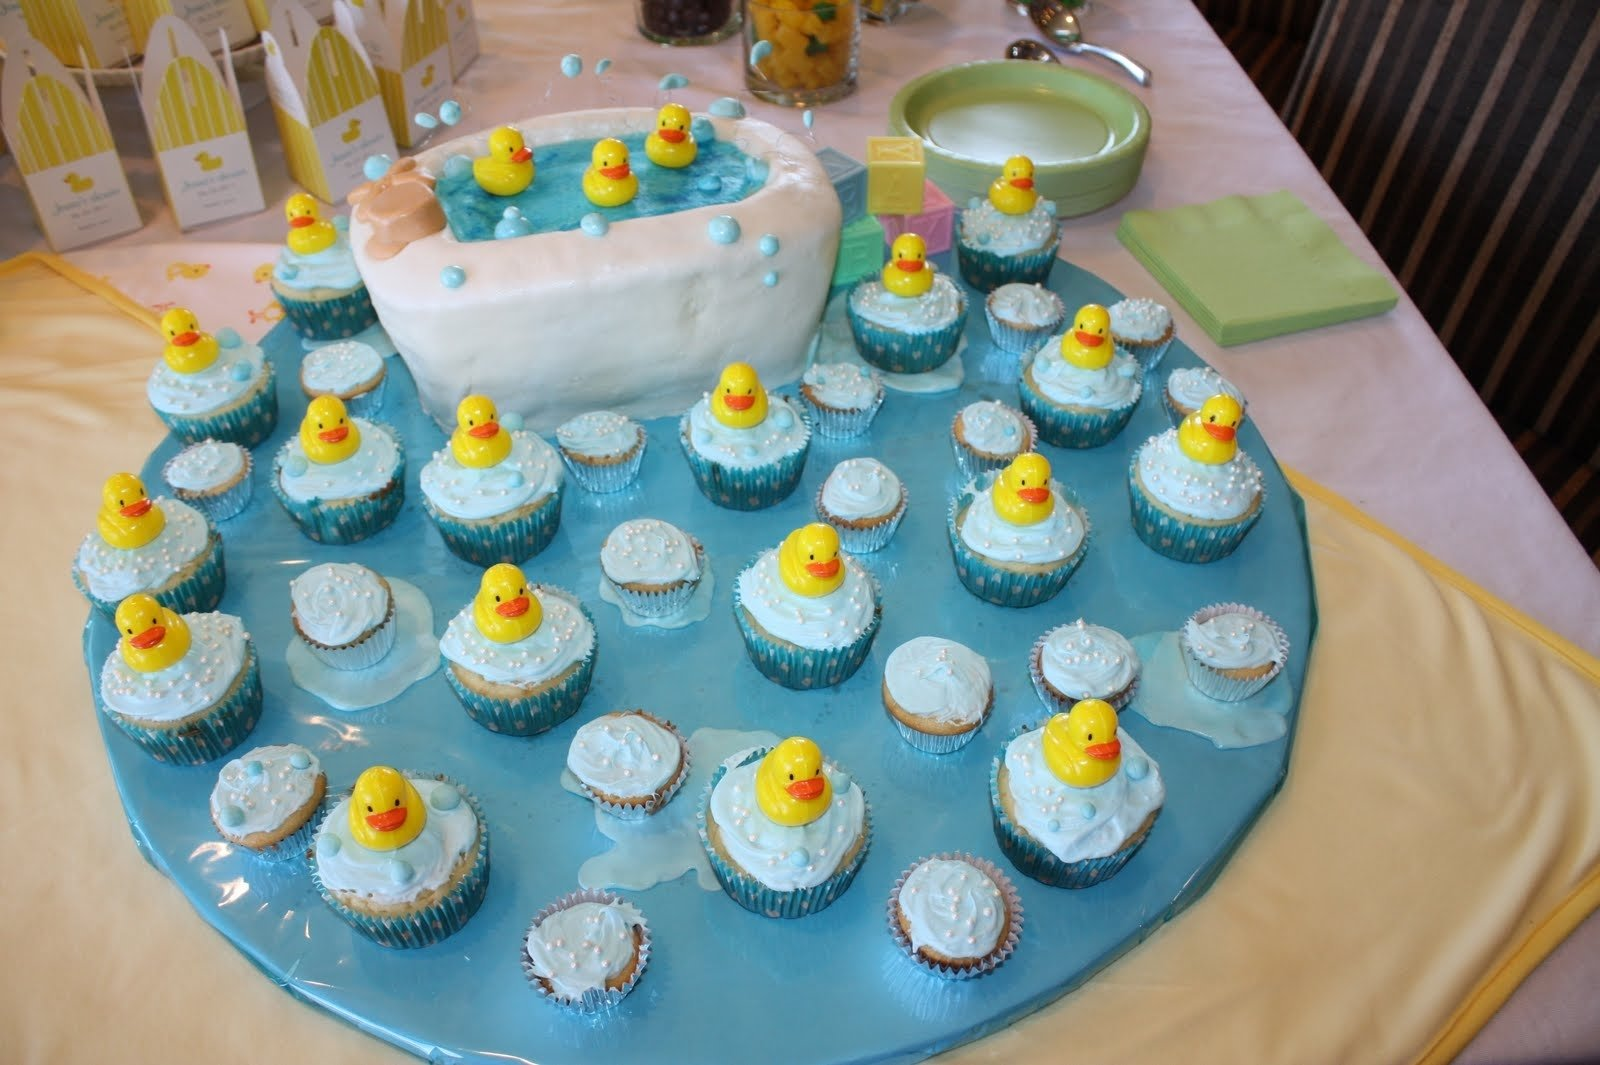 cute ideas de baby shower – deboto home design : ideas de baby